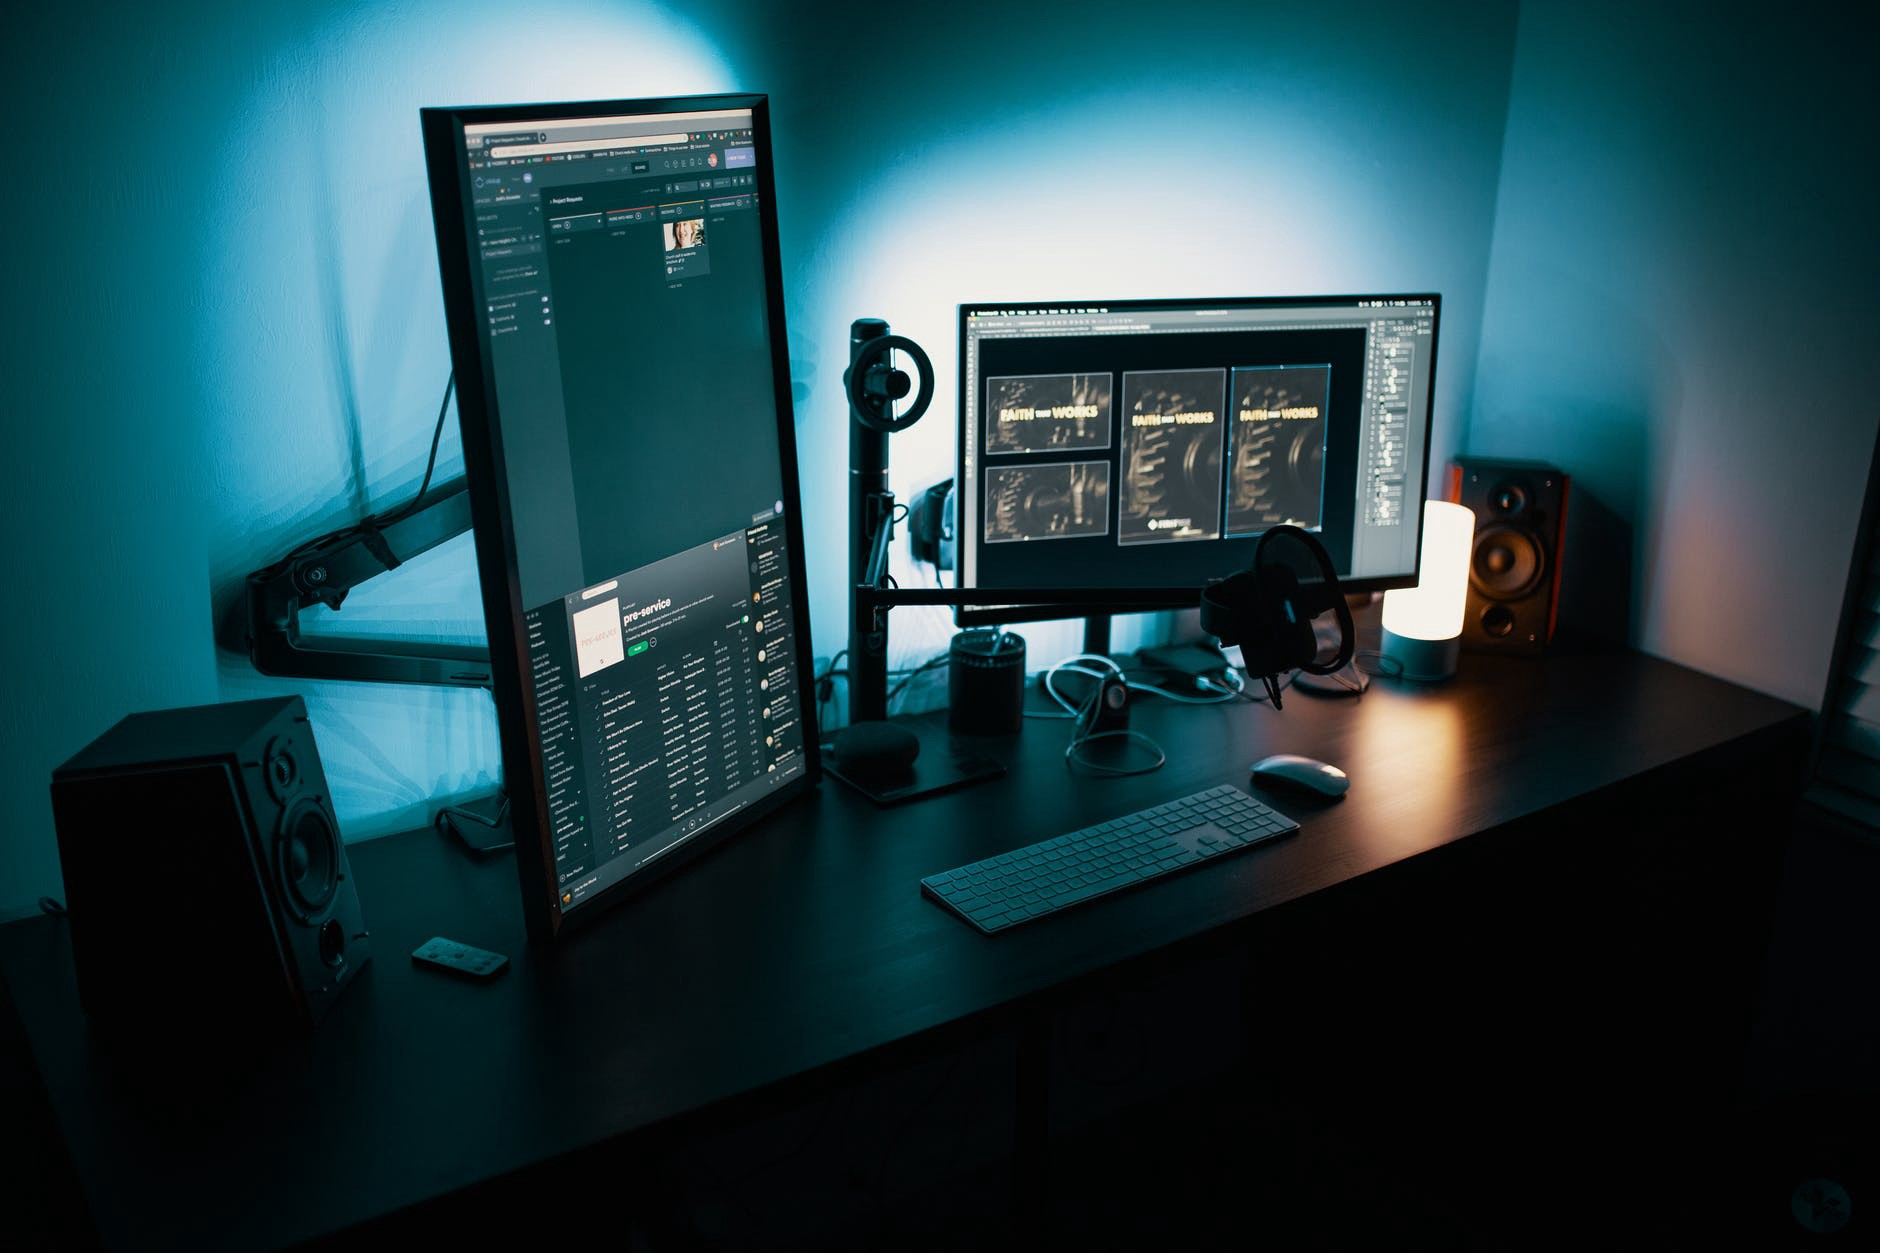 two monitor together